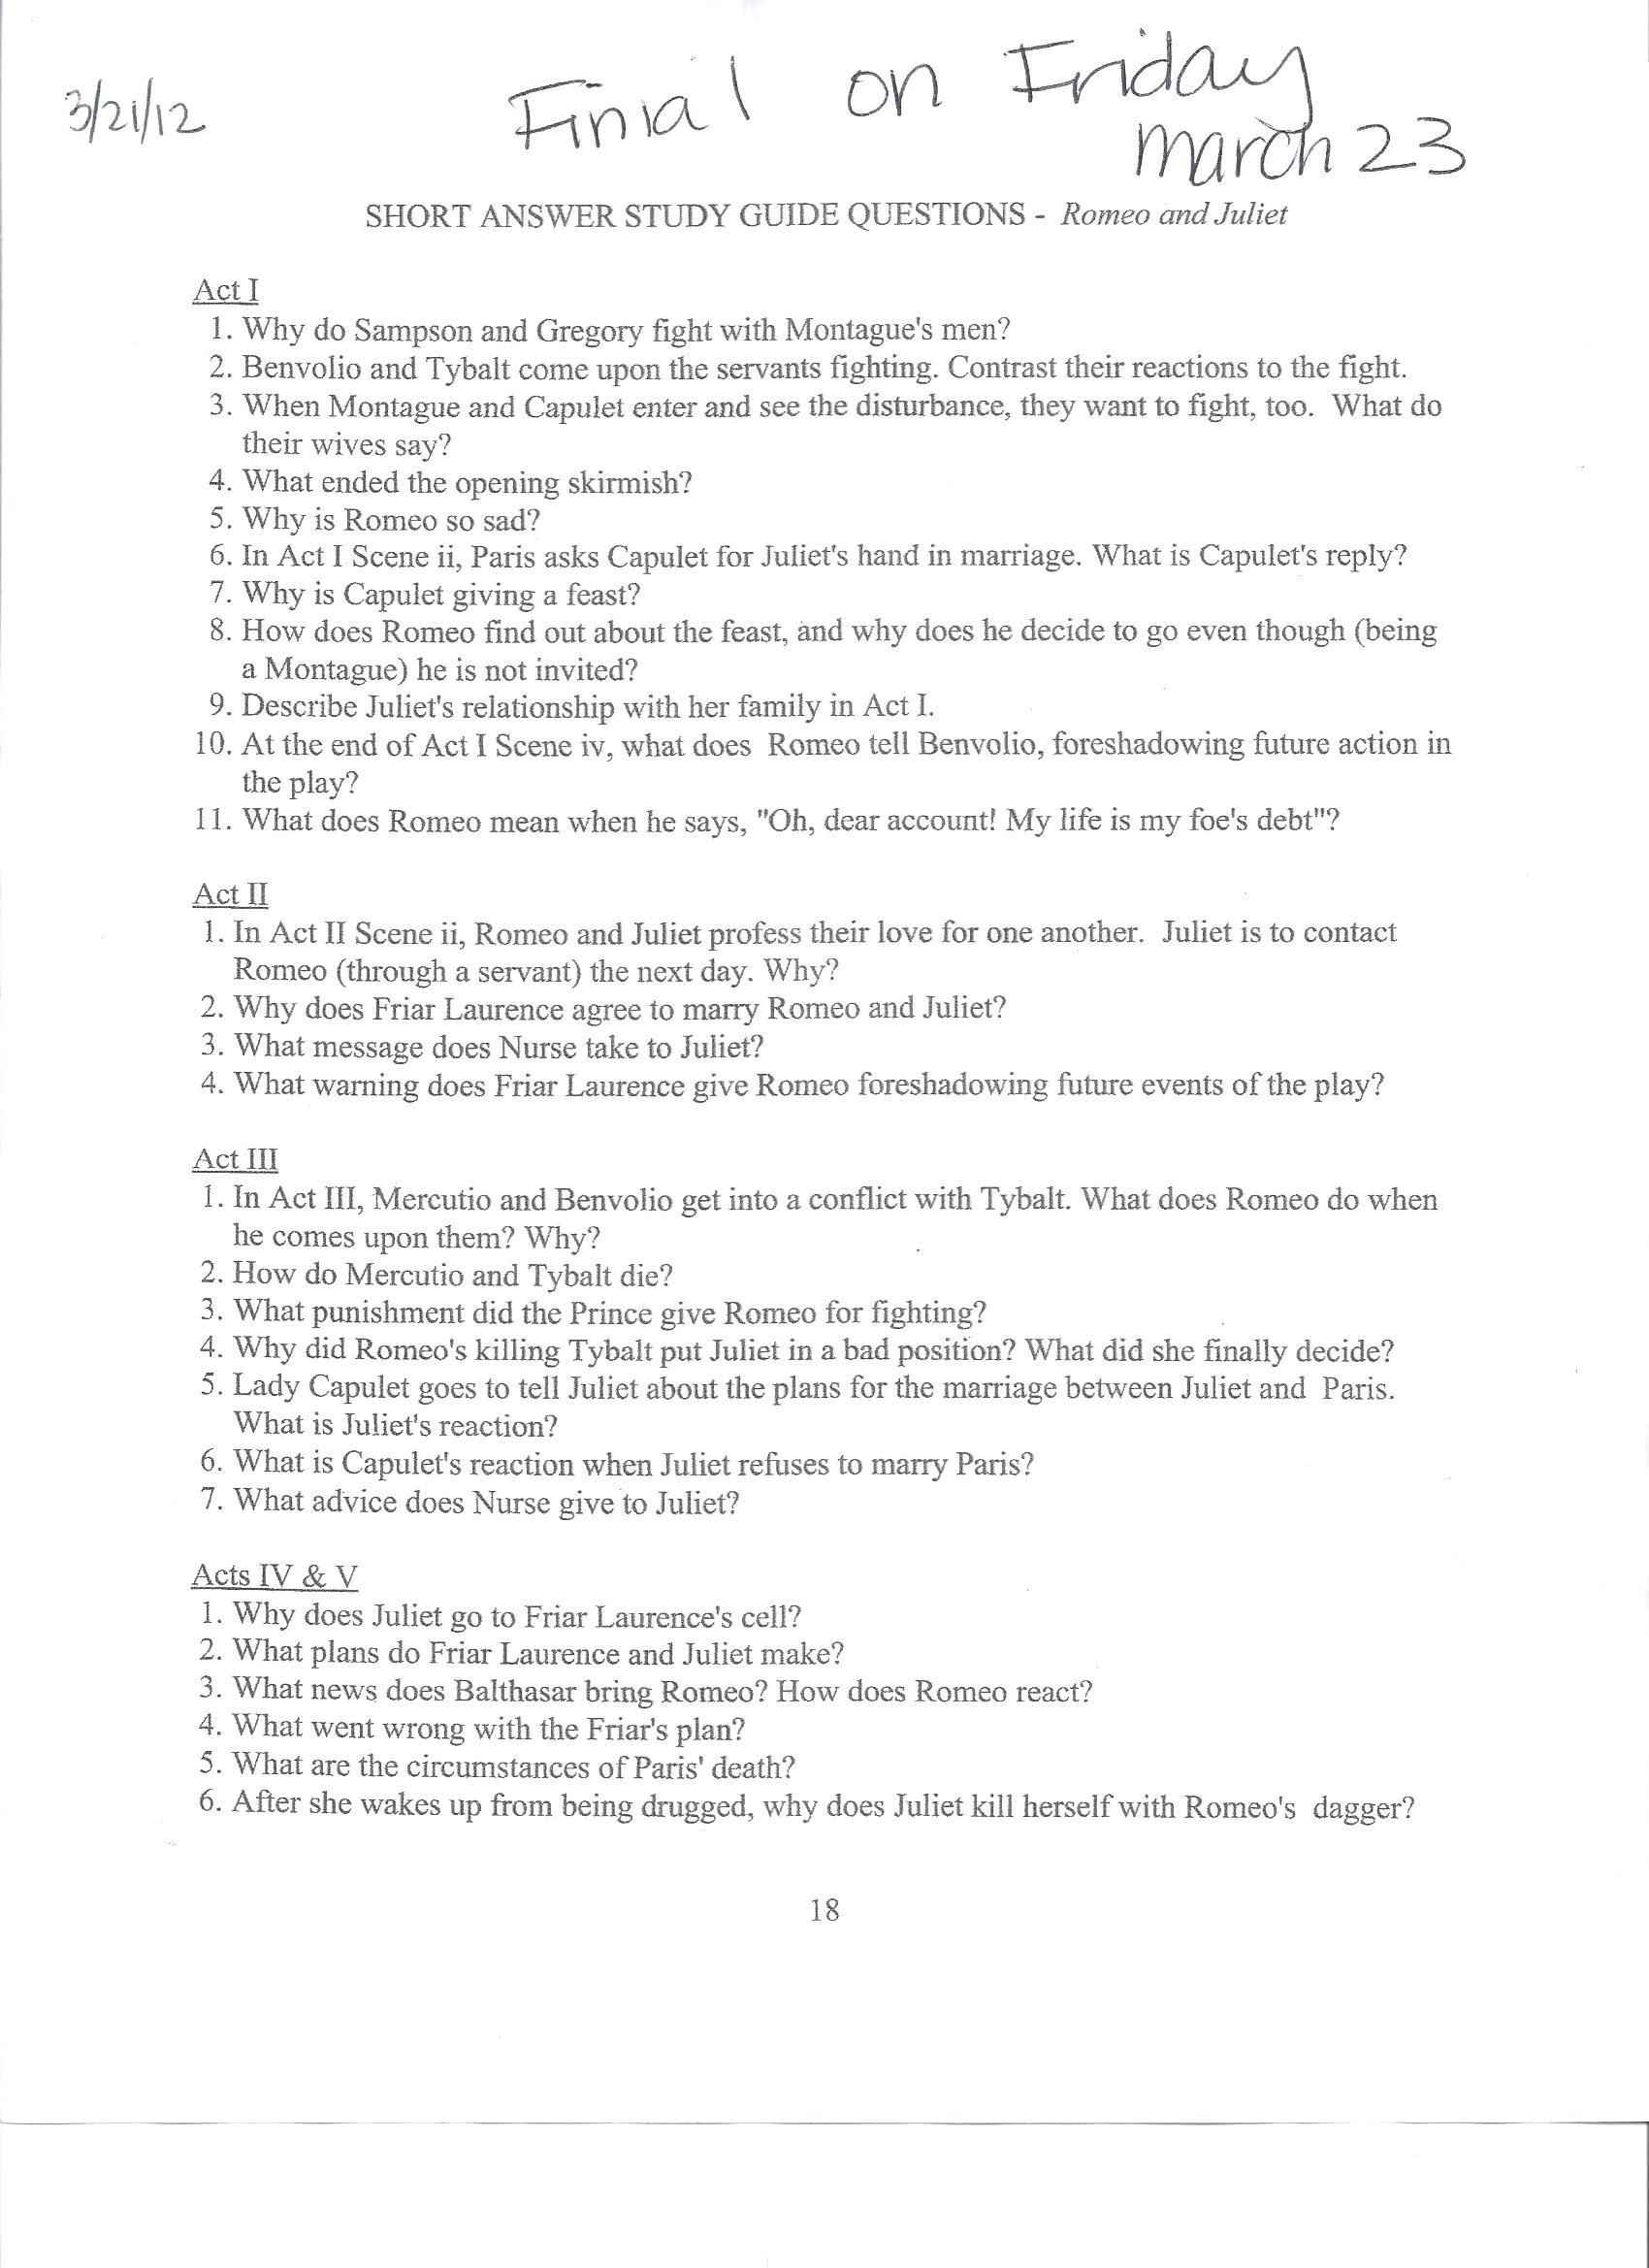 001 Essay Example English201203 21 1220romeo20and20juliet20study20guide Romeo And Juliet Astounding Topics Pdf Questions Grade 10 Answers Full